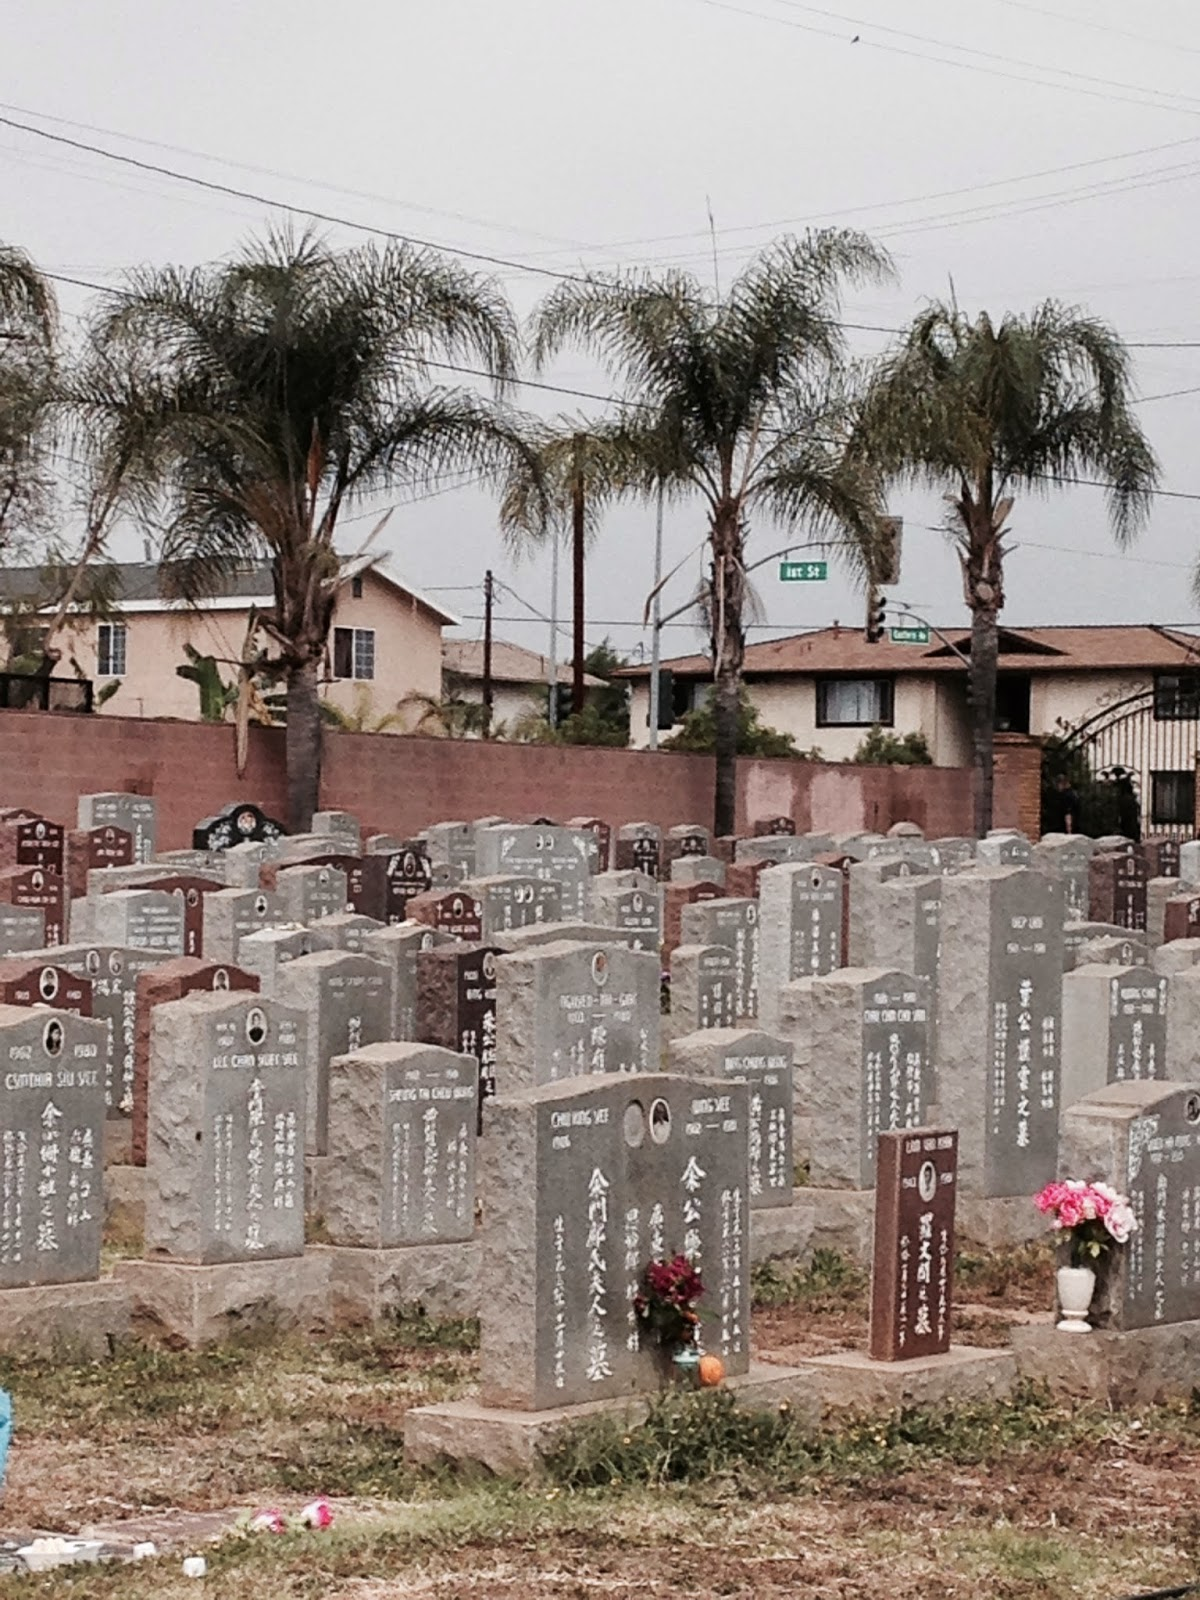 Los angeles revisited history of east los angeles cal this view by the corner of 1st and eastern shows the modern headstones these facing east whereas the previous picture shows the older headstones facing yadclub Gallery